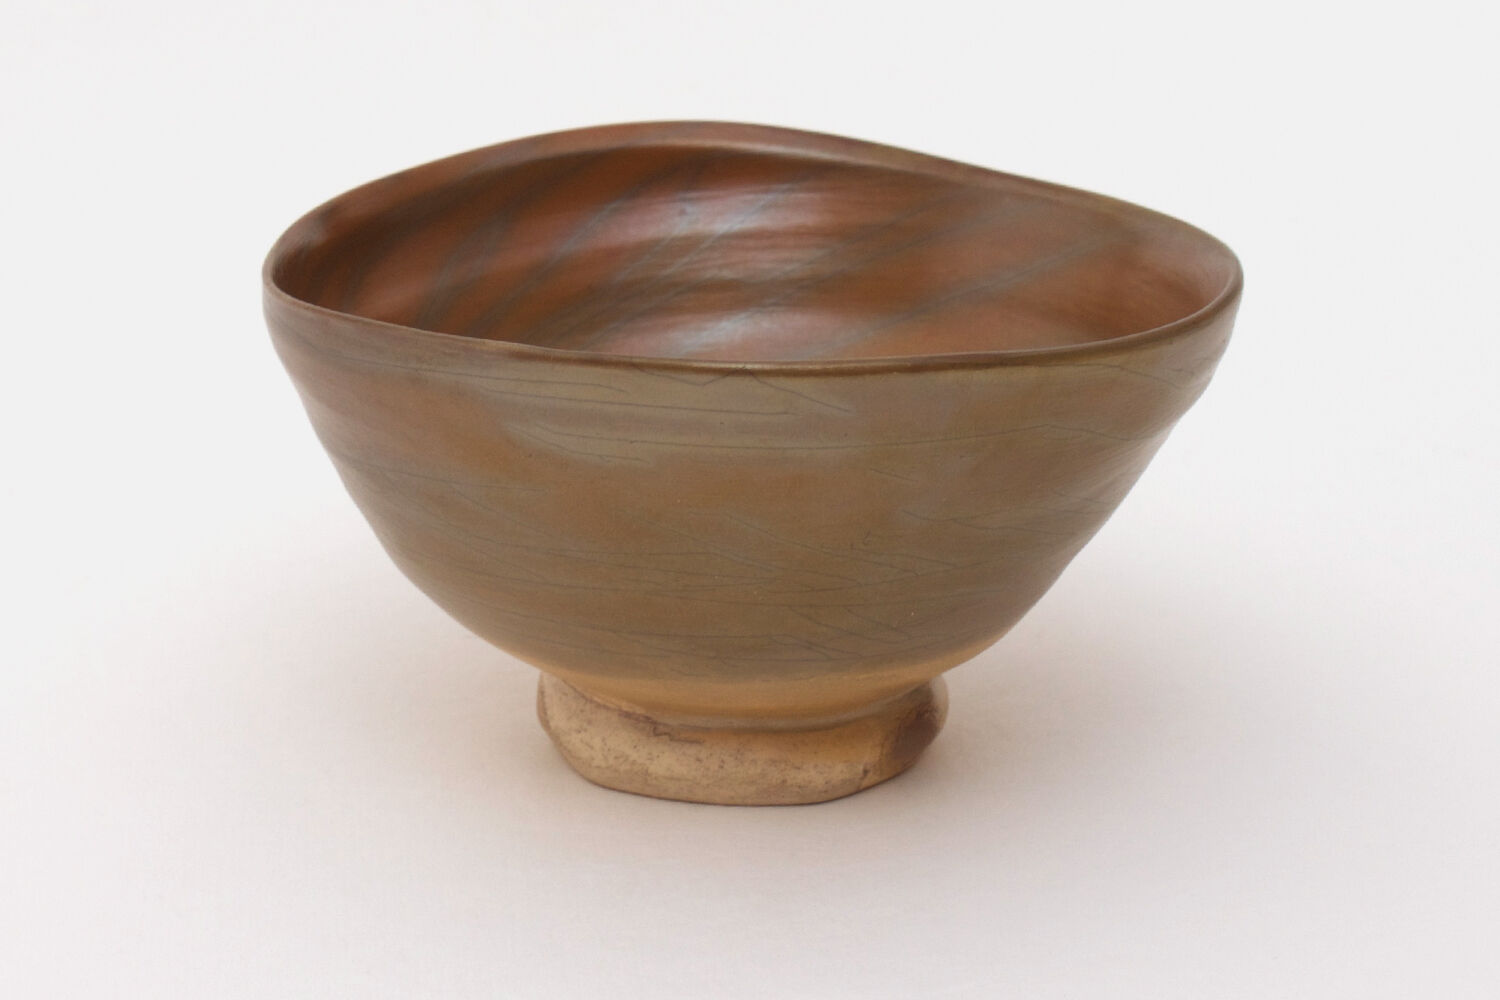 Dalloun Ceramic Tea Bowl 3